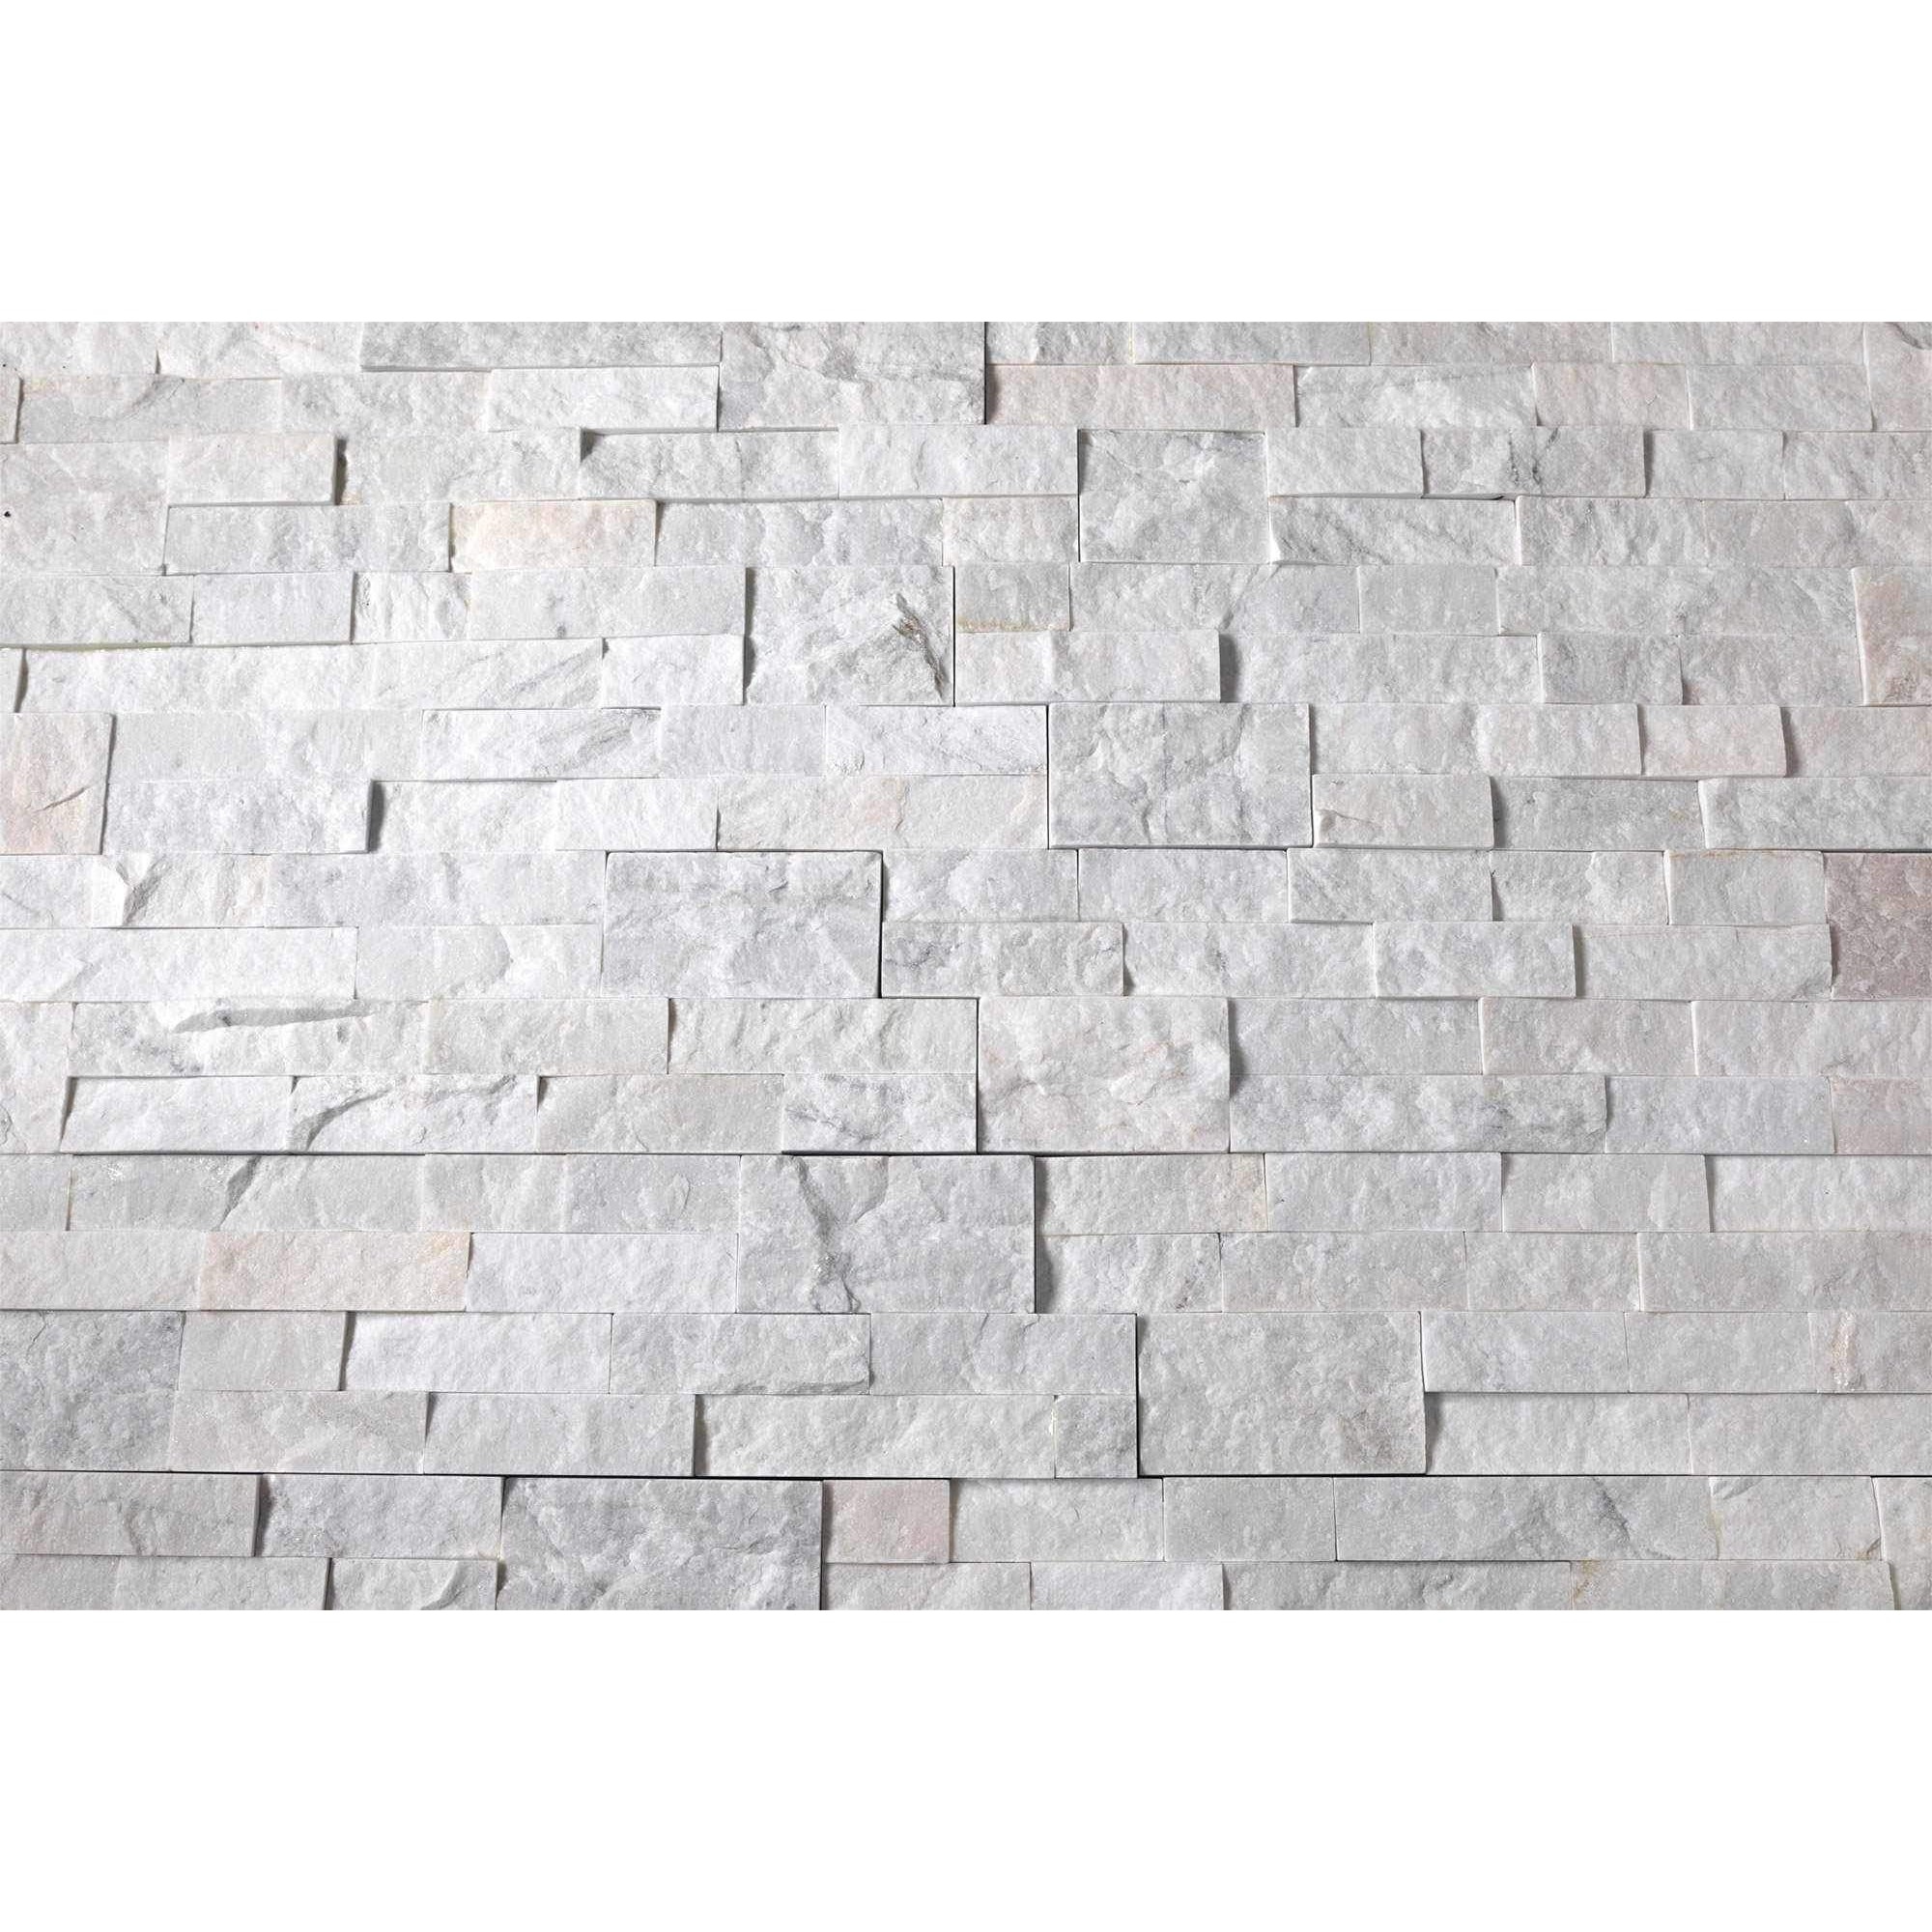 Natural Stacked Stone Feature Wall Cladding Panels - Milky White